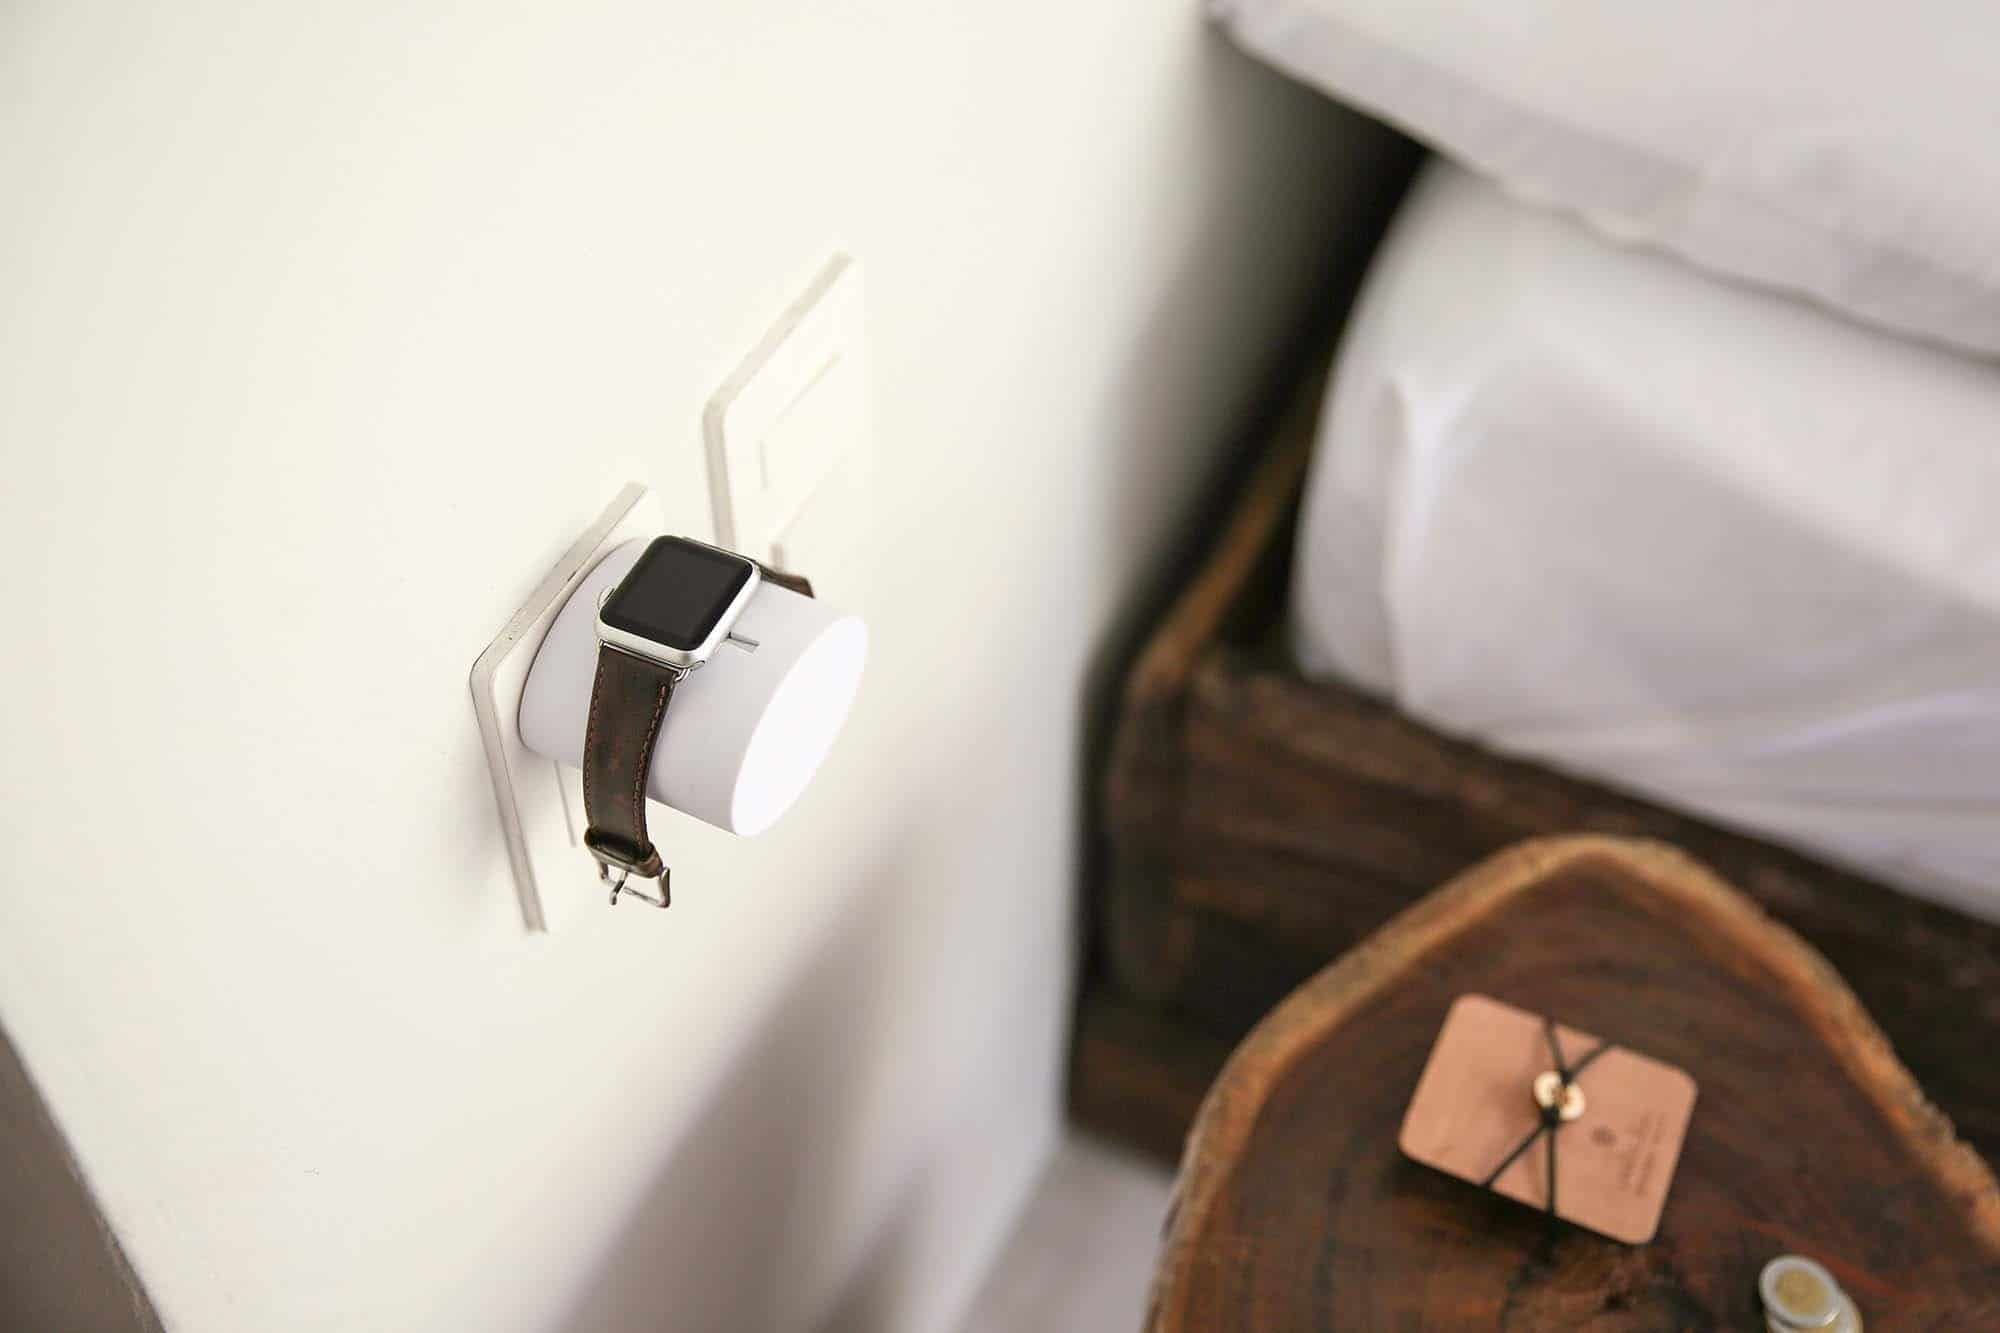 Power up Apple Watch with this on-the-wall charging stand